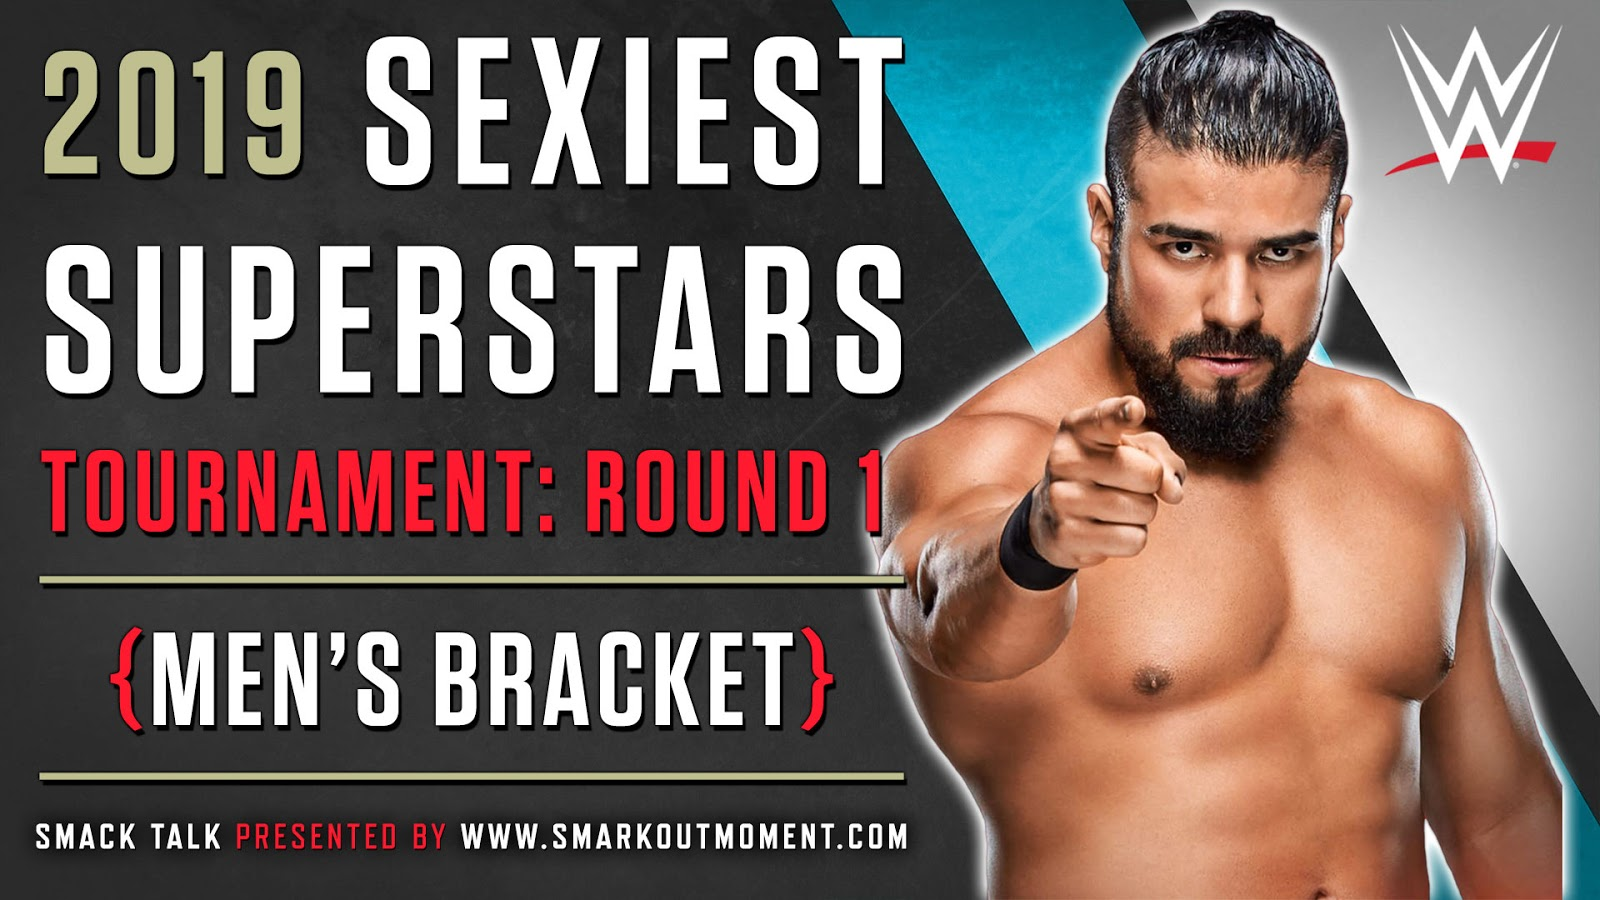 Sexiest WWE Superstars Tournament Round 1 - Hottest Man in